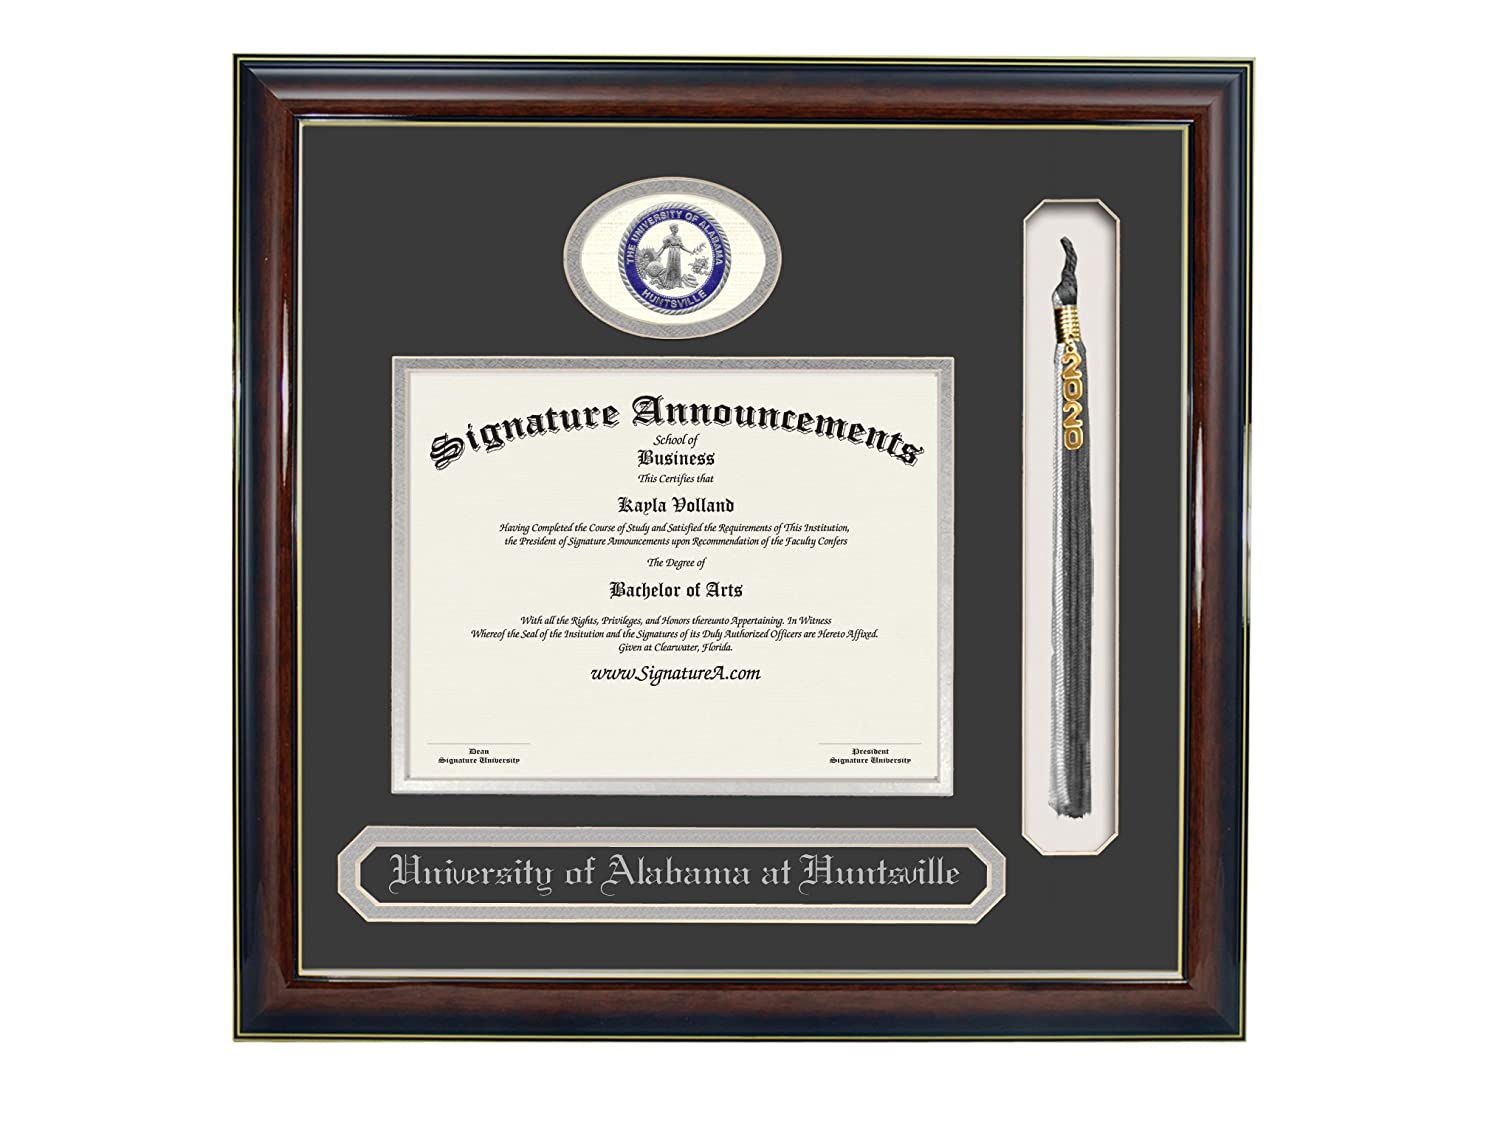 Signature Announcements University-of-Alabama-in-Huntsville Undergraduate Name /& Tassel Graduation Diploma Frame 16 x 16 Gloss Mahogany with Gold Accent Sculpted Foil Seal